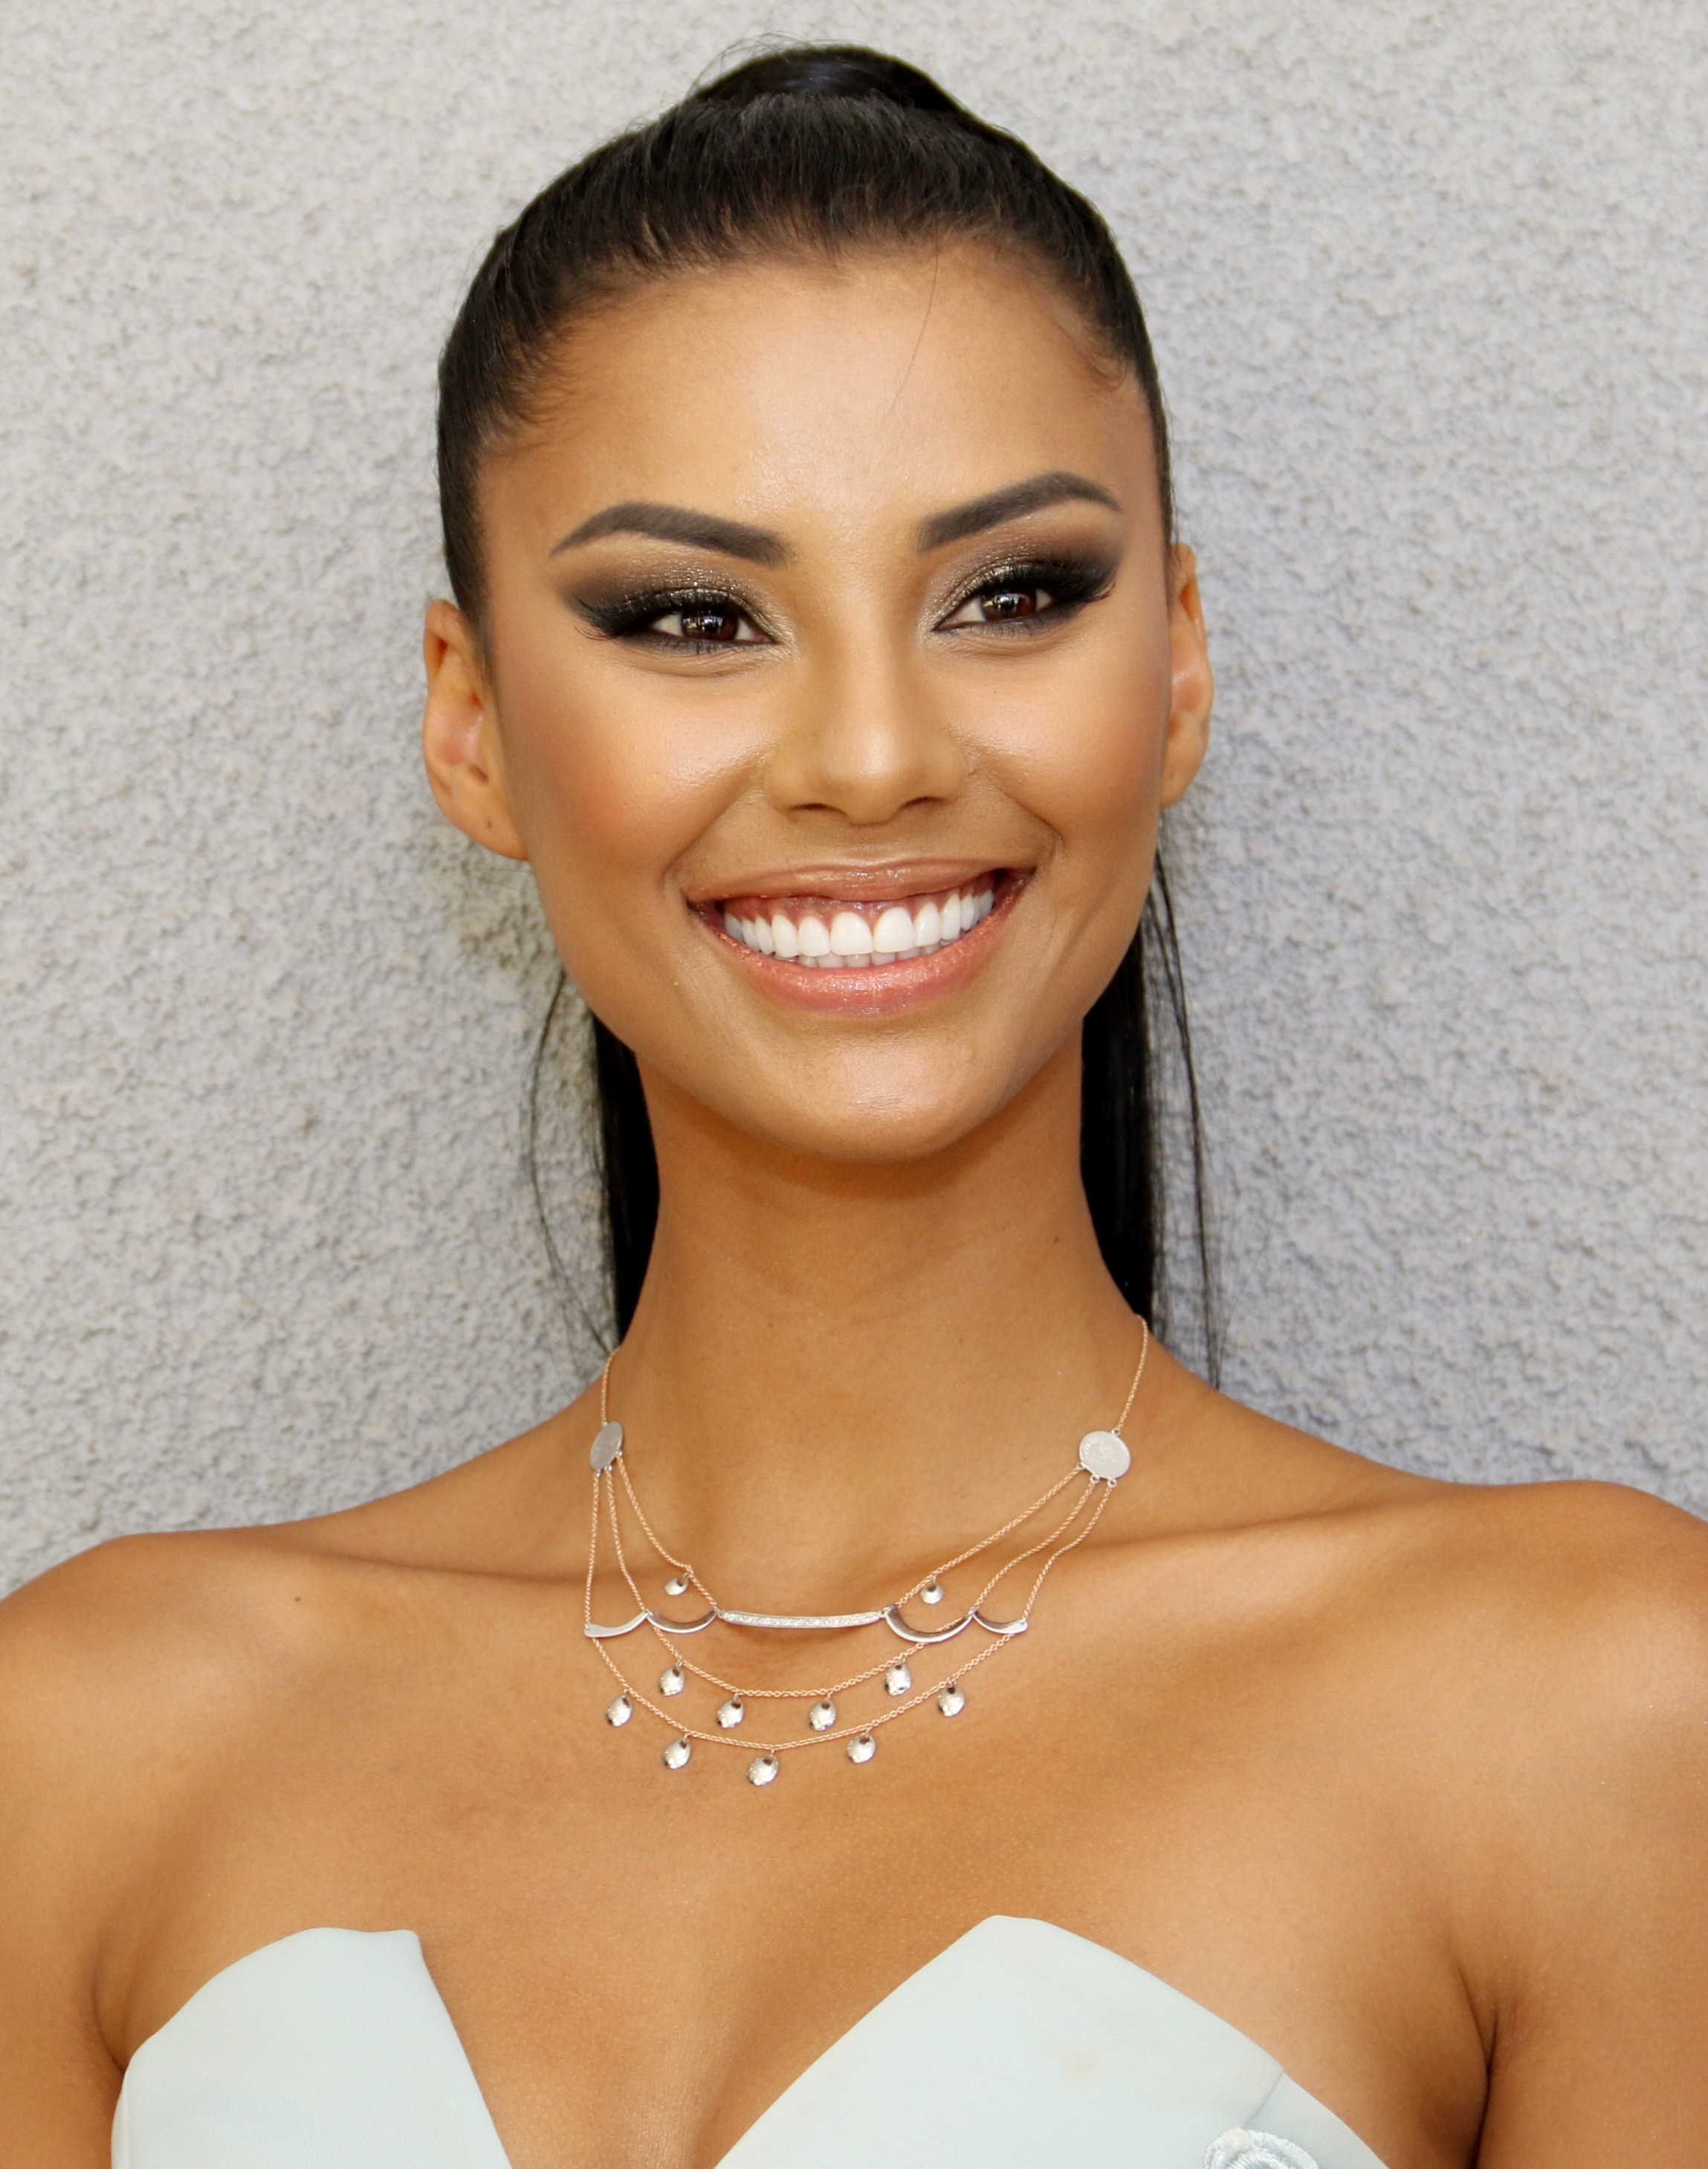 Miss South Africa Tamaryn Green runner-up at the Miss Universe Pageant 2018